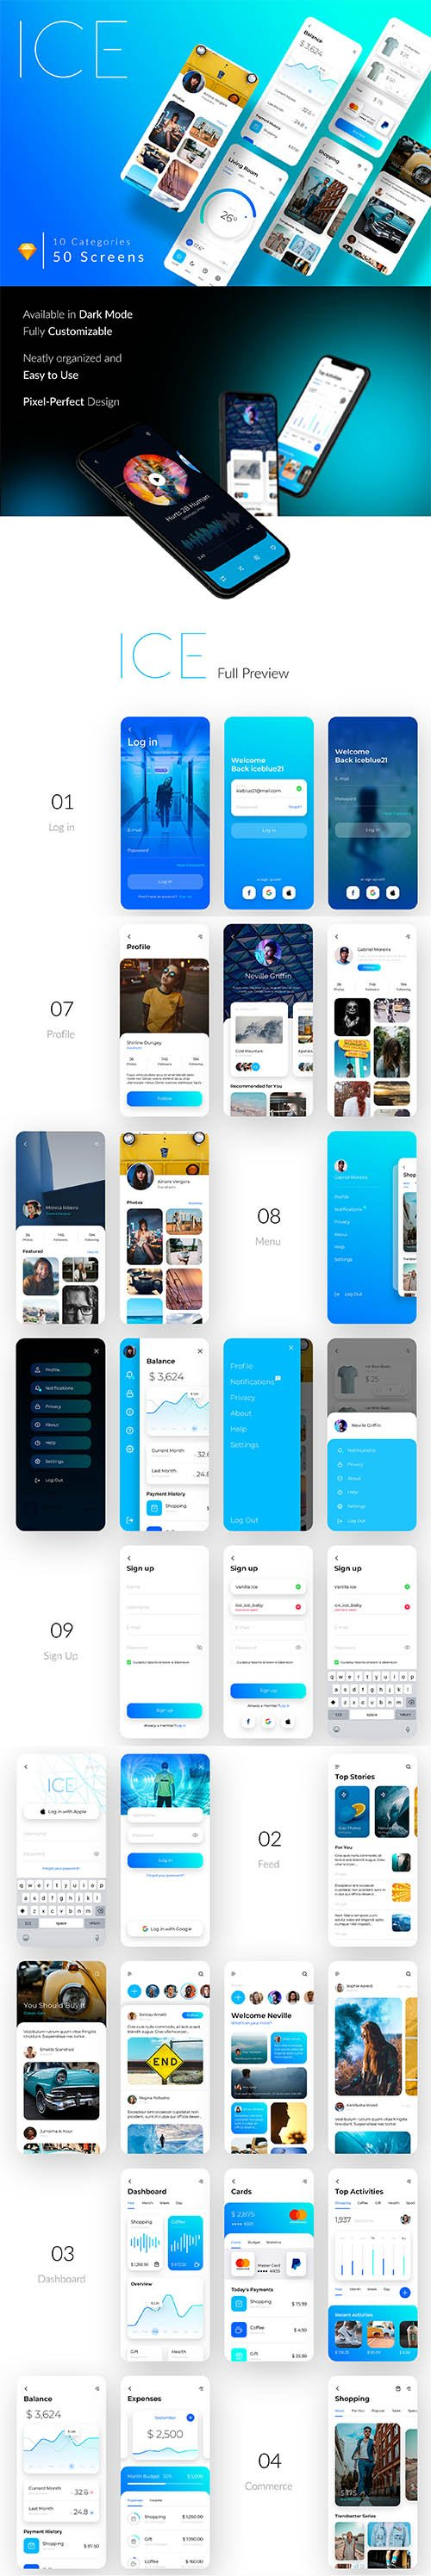 ICE Multipurpose iOS UI Kit - UI8